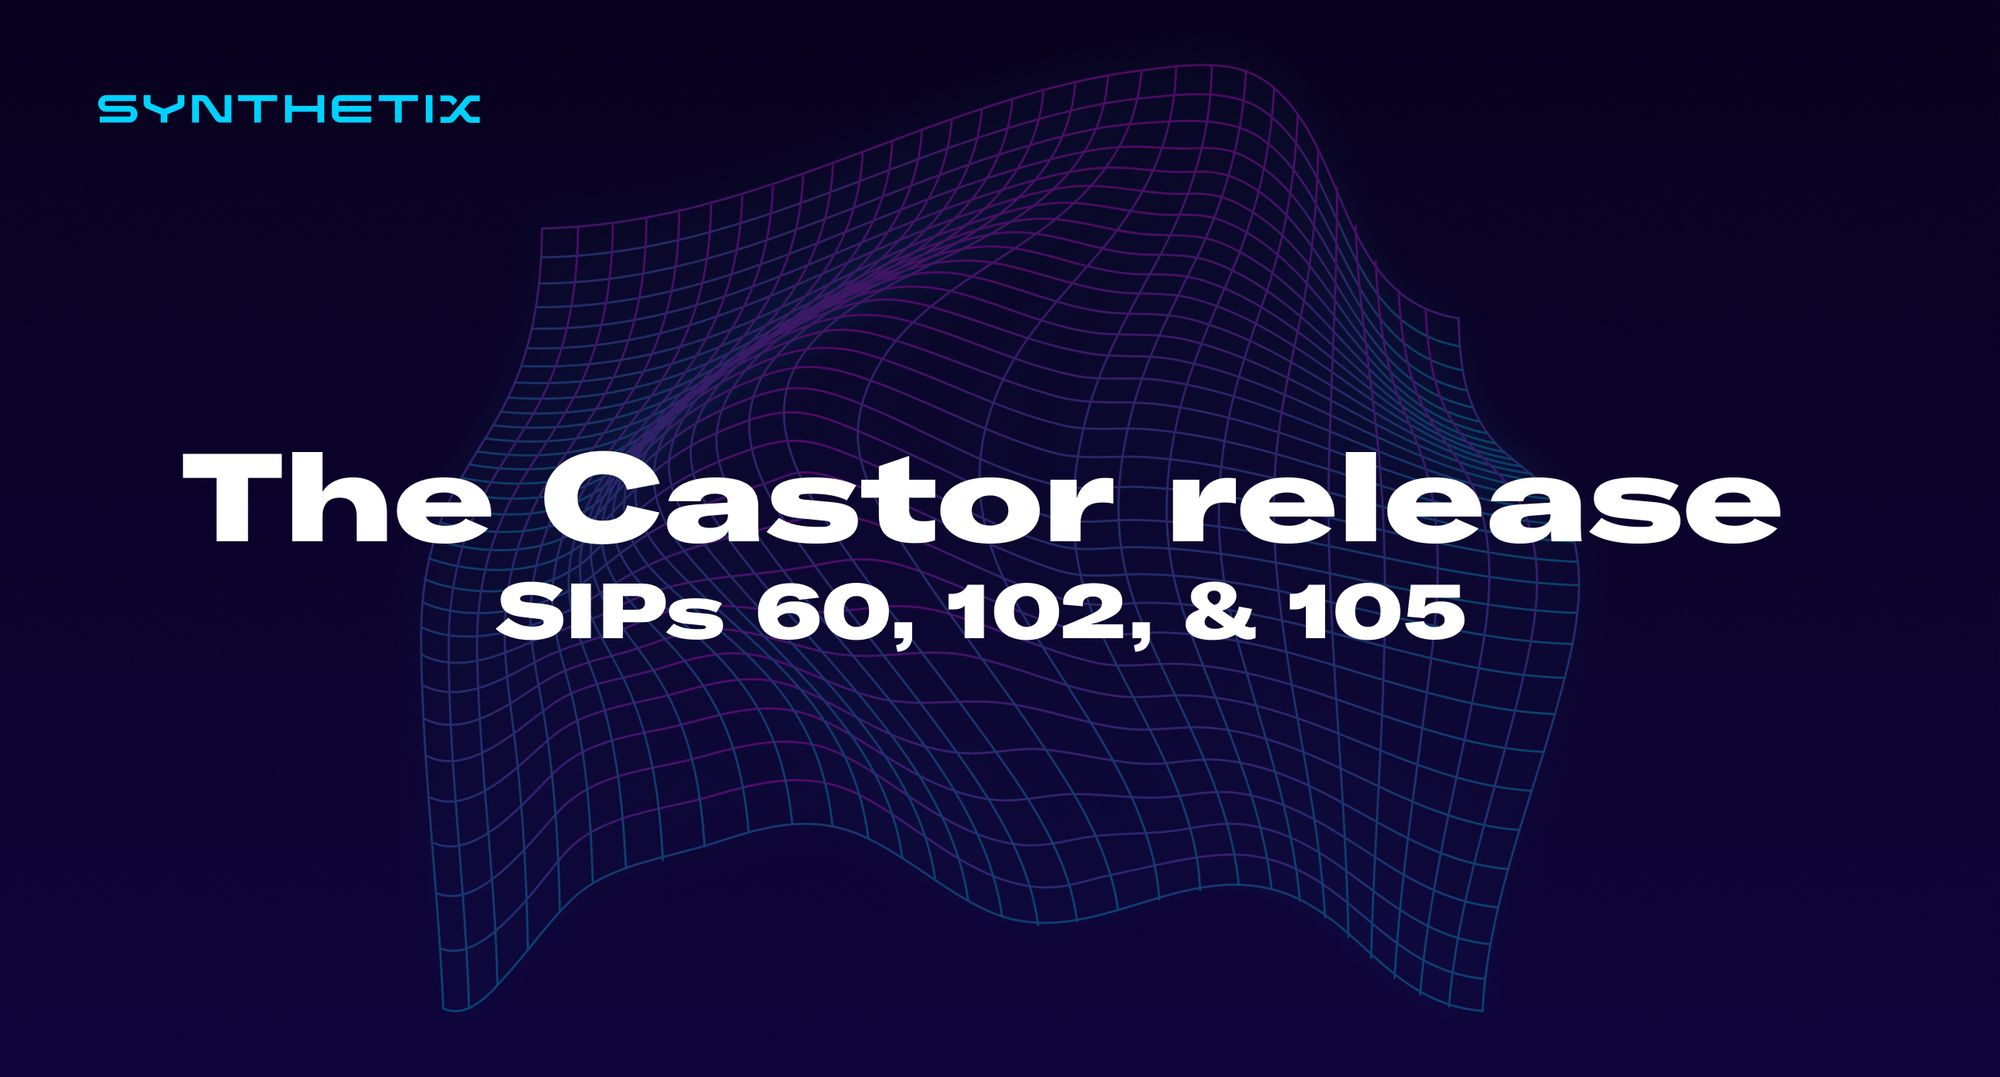 The Castor release